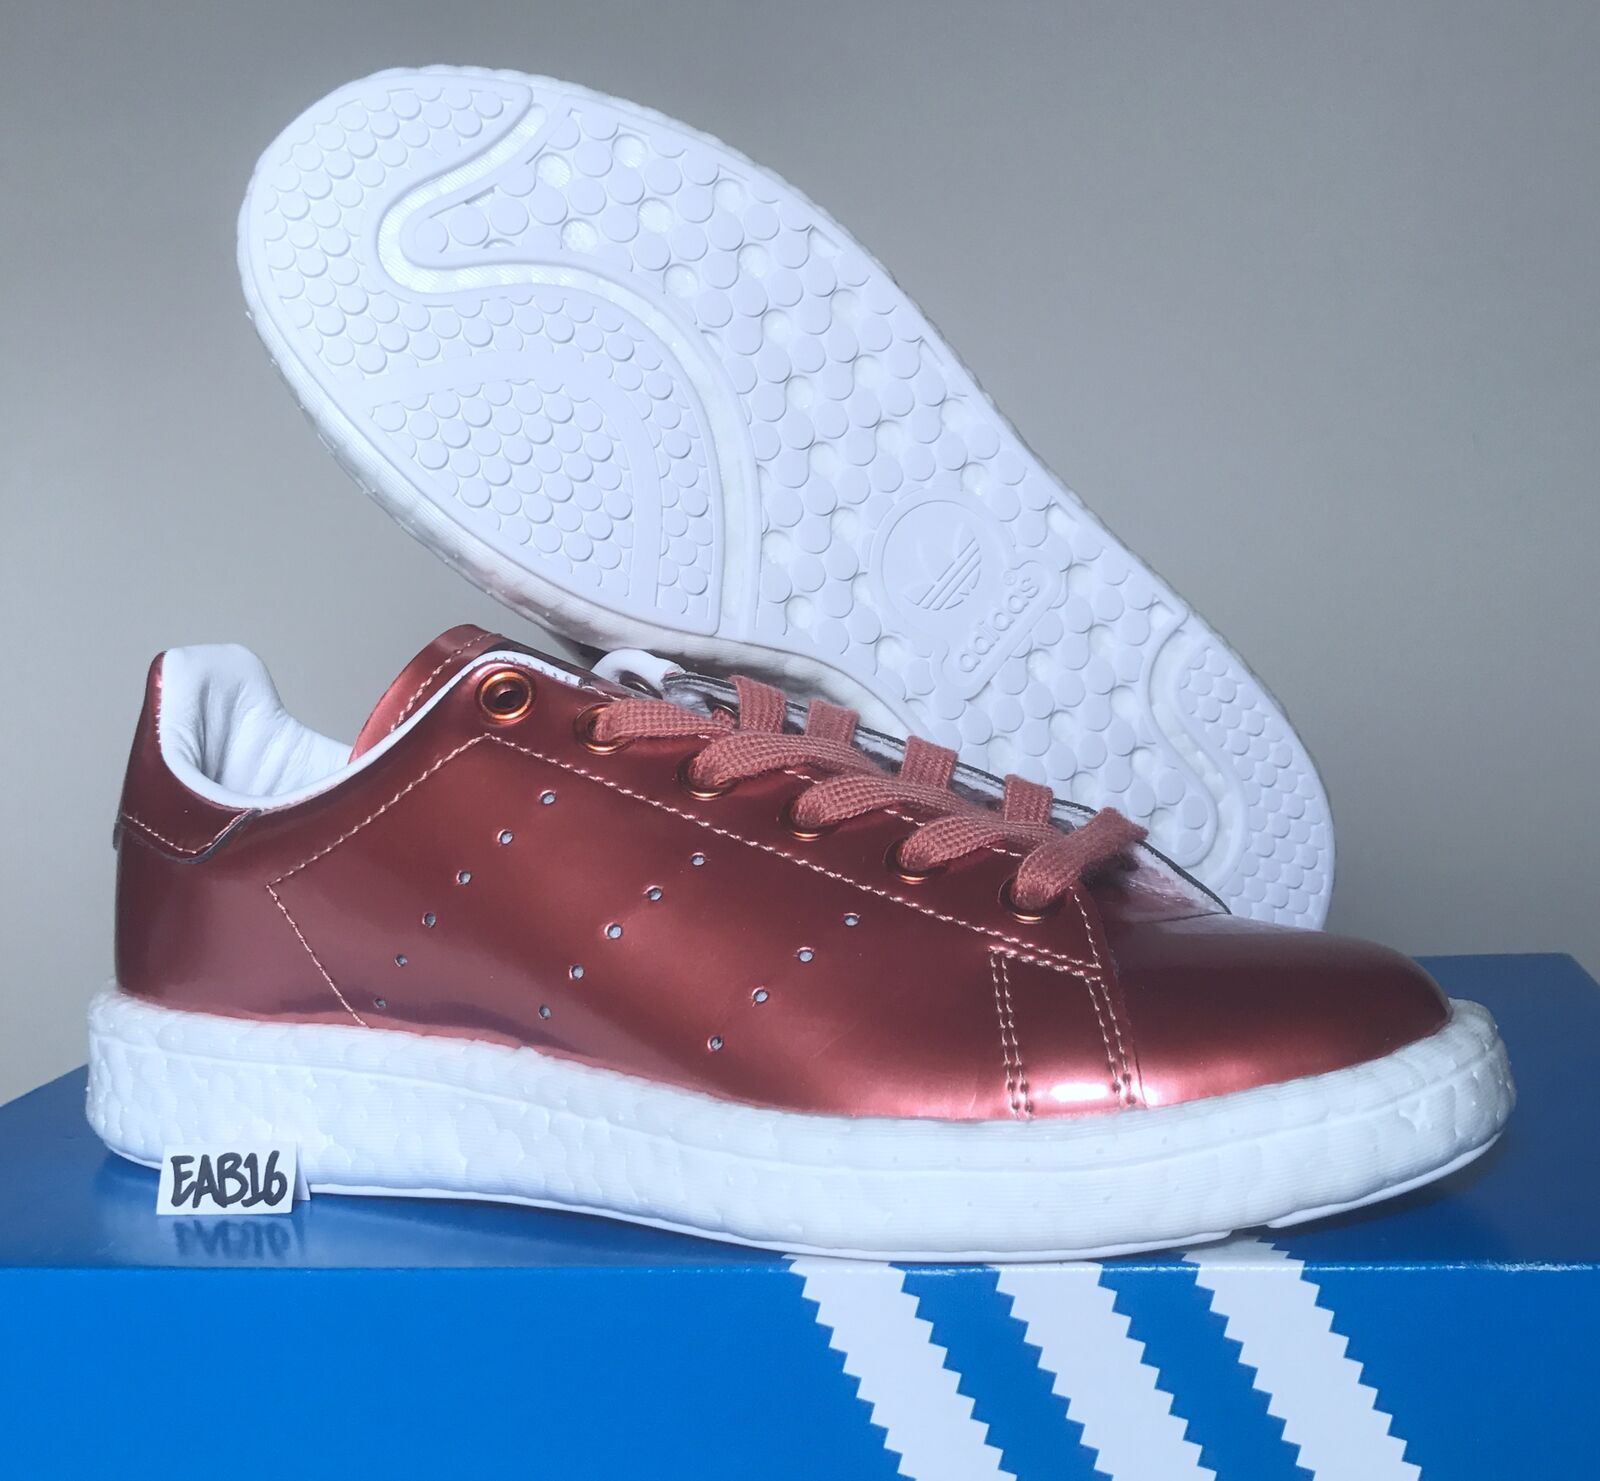 Adidas Originals Womens W Stan Smith BOOST Metallic Copper BB0107 Rose Gold best-selling model of the brand